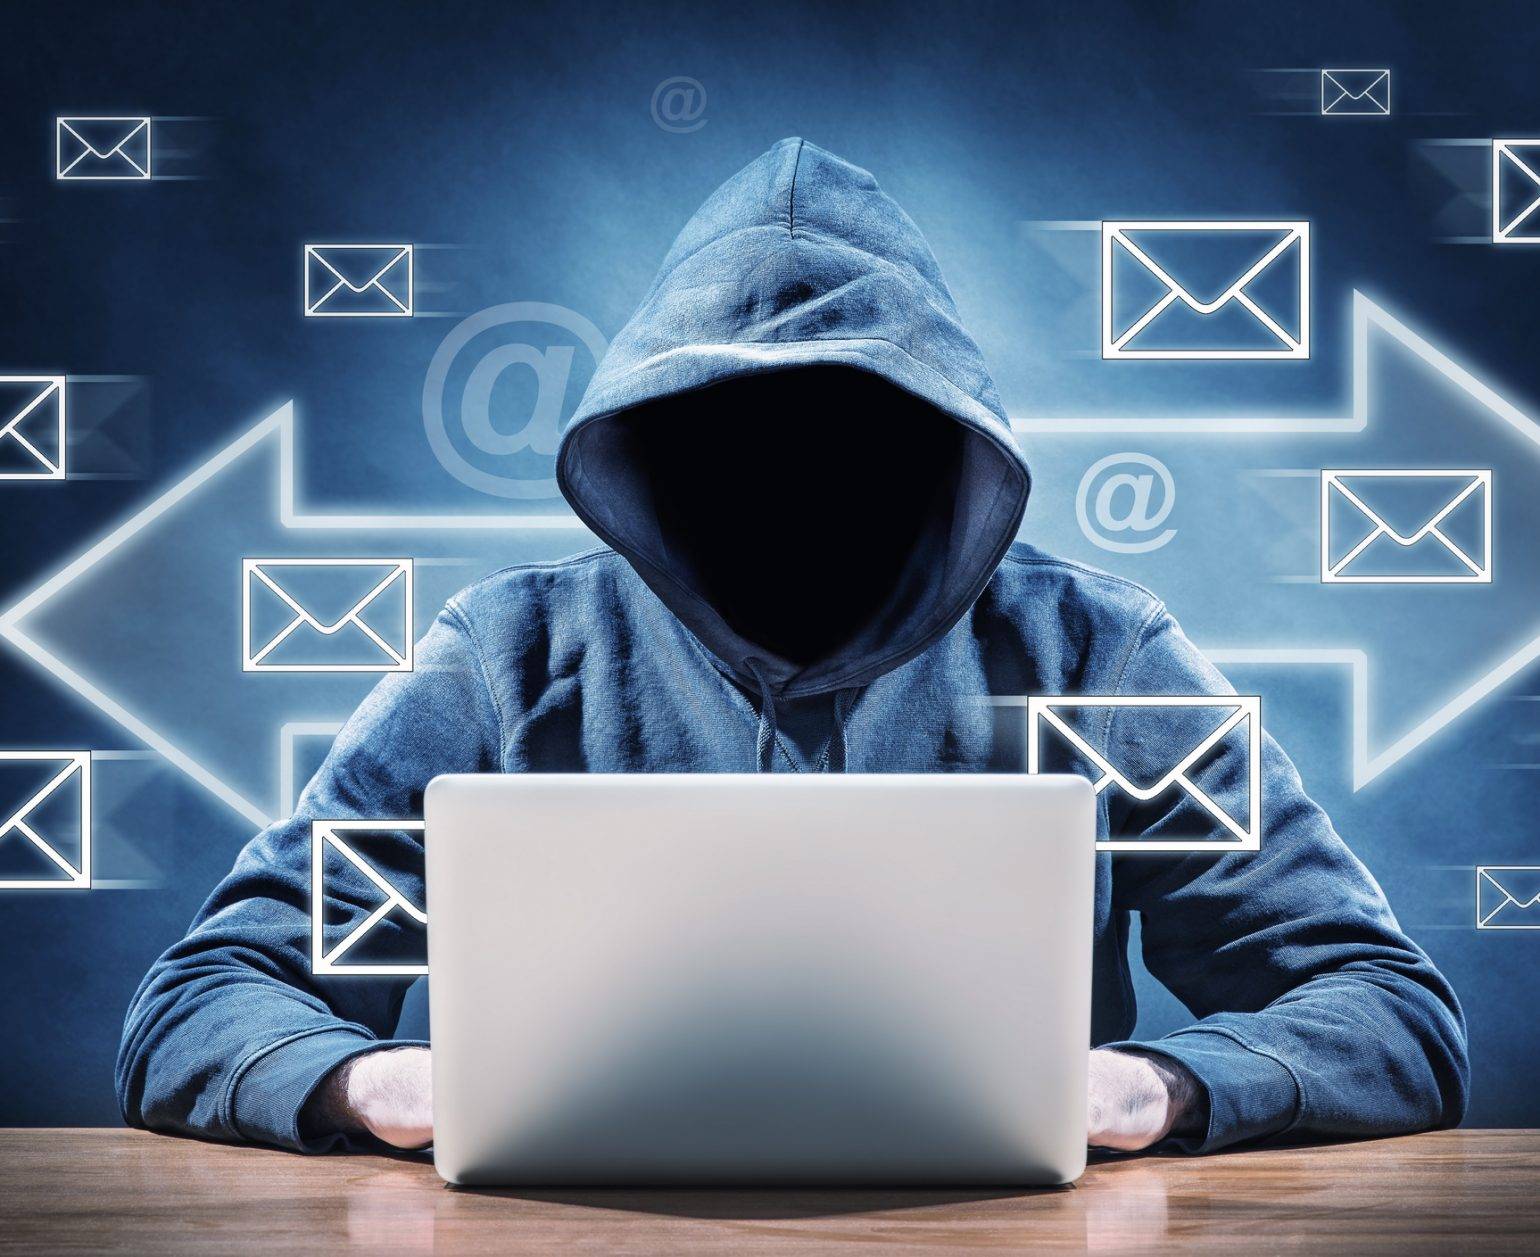 man on a computer surrounded by email icons